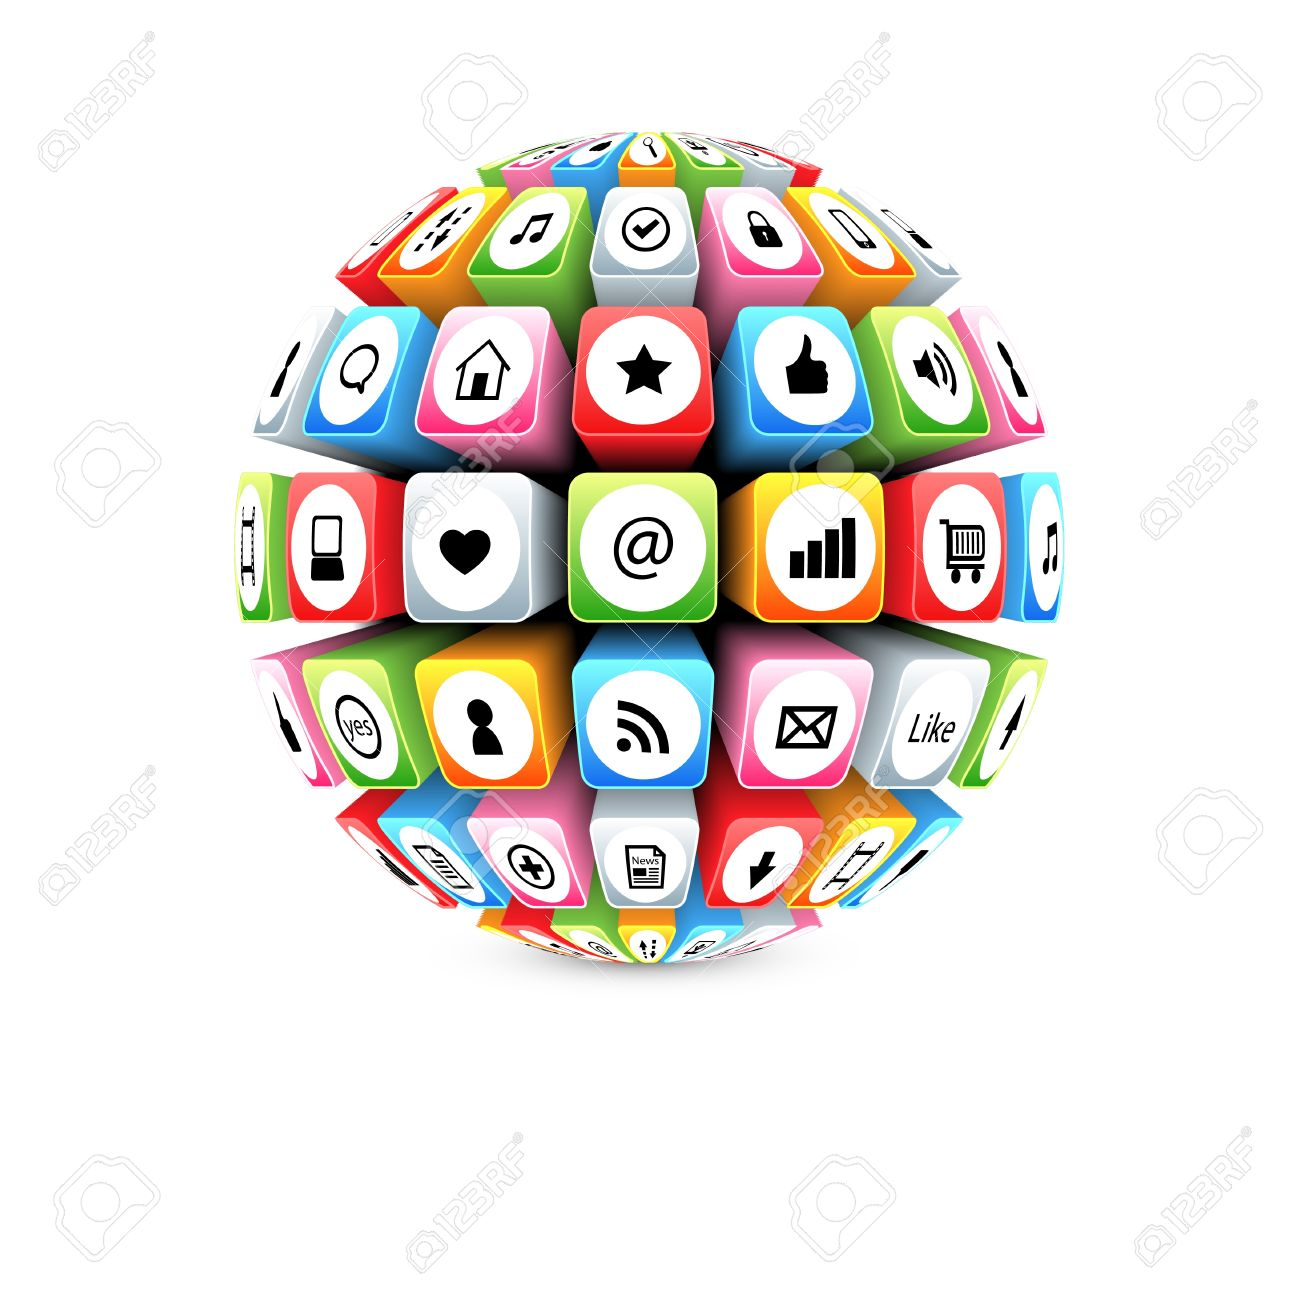 3d sphere with colorful internet symbols Stock Vector - 13799744